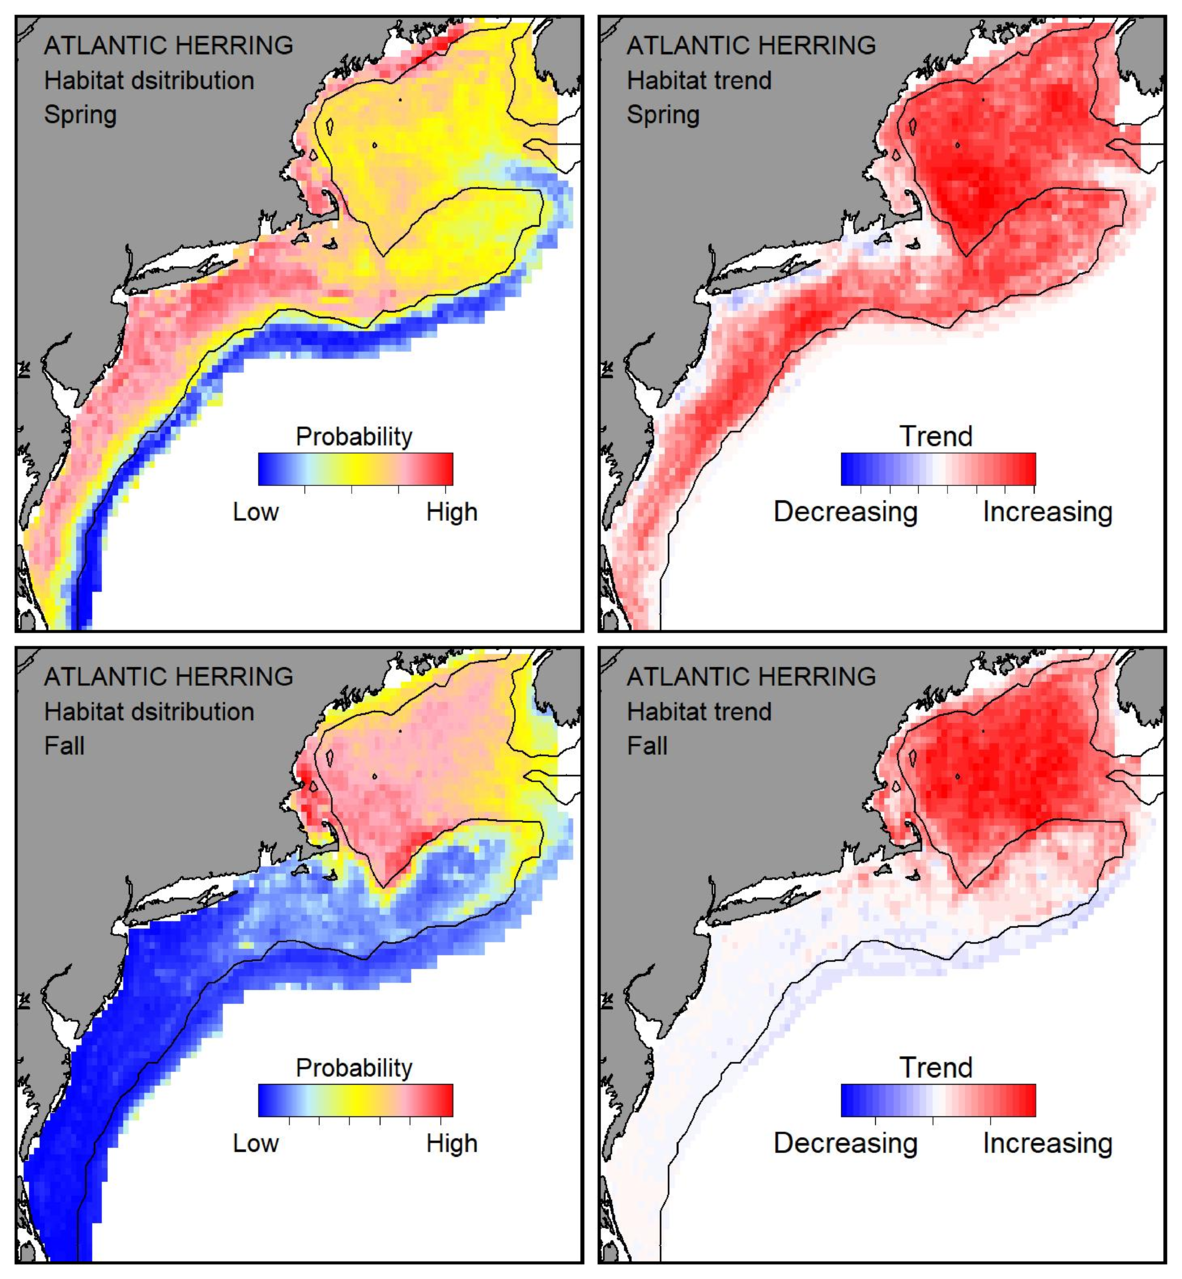 Top row: Probable habitat distribution for Atlantic herring showing the highest concentration and increasing trend in the Gulf of Maine during the spring. Bottom row: Probable habitat distribution for Atlantic herring showing the highest concentration and increasing trend in the Gulf of Maine during the fall.